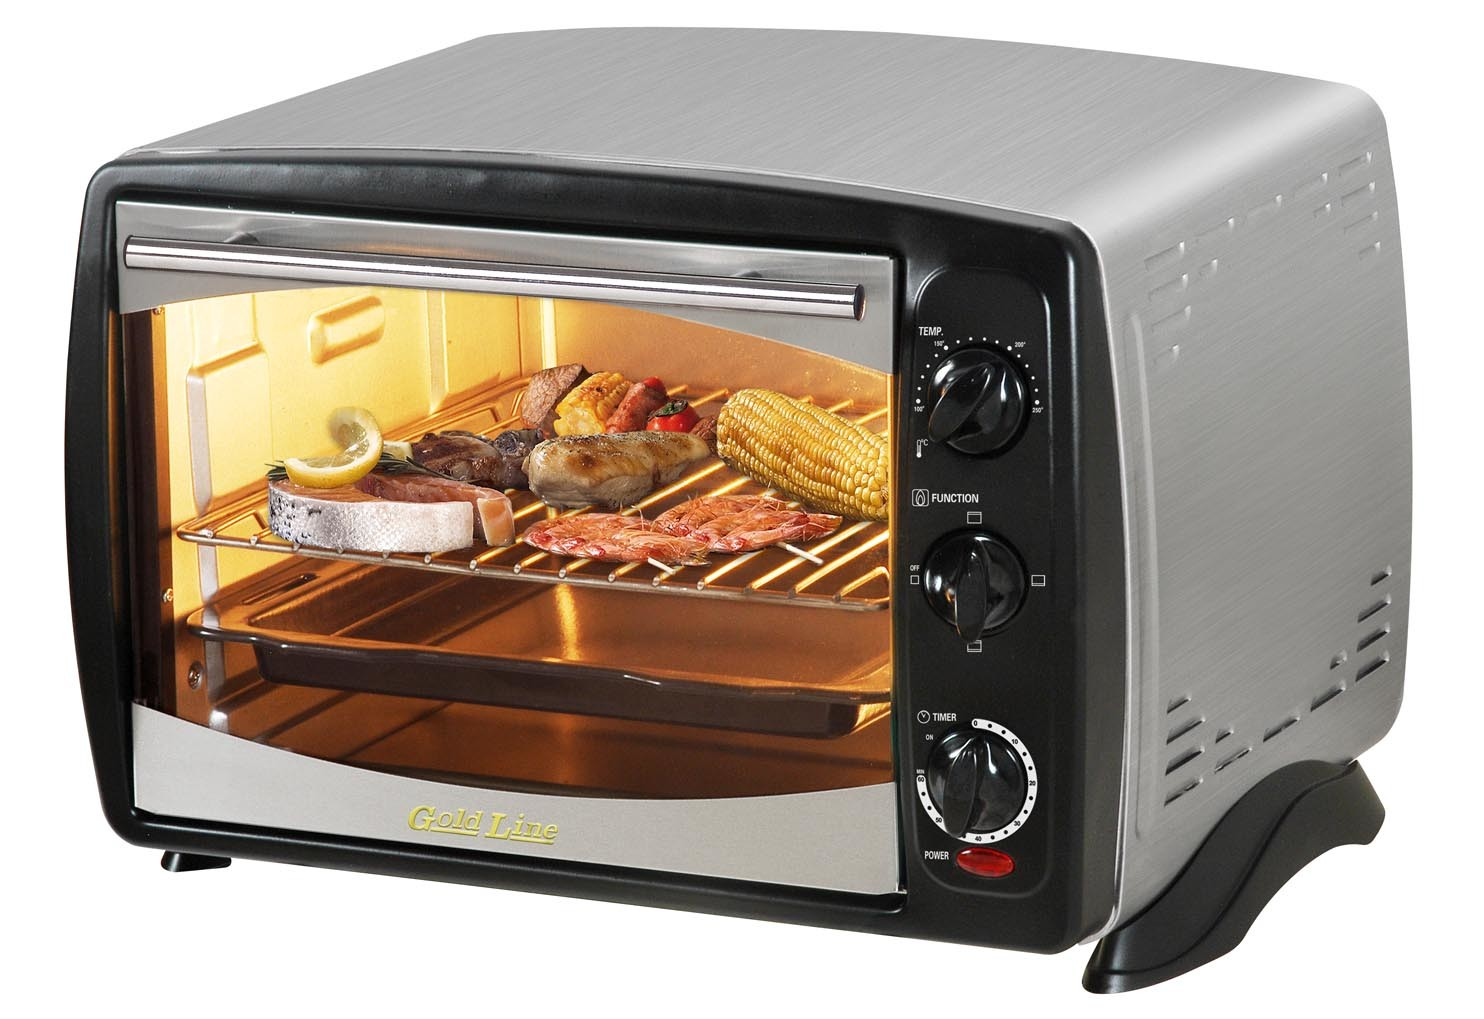 China Stainless Steel Electric Toaster Oven With 1380w